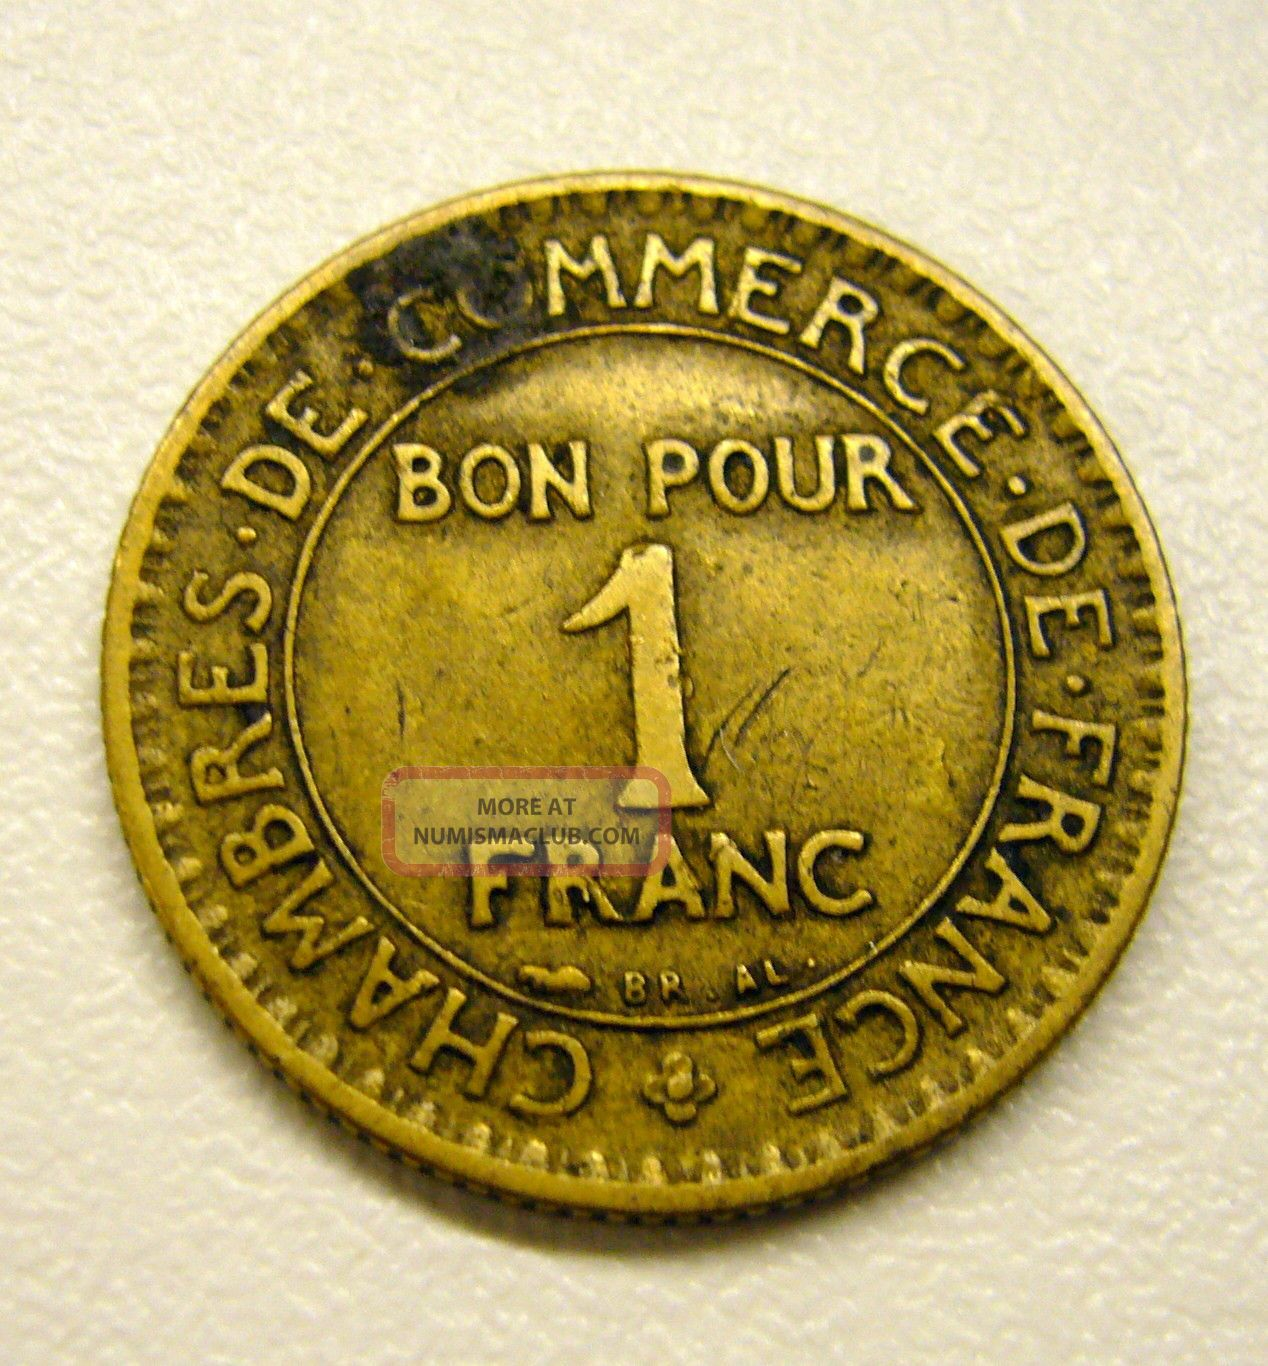 1923 1 franc coin commerce industrie bon pour france for Chambre de commerce de france bon pour 2 francs 1923